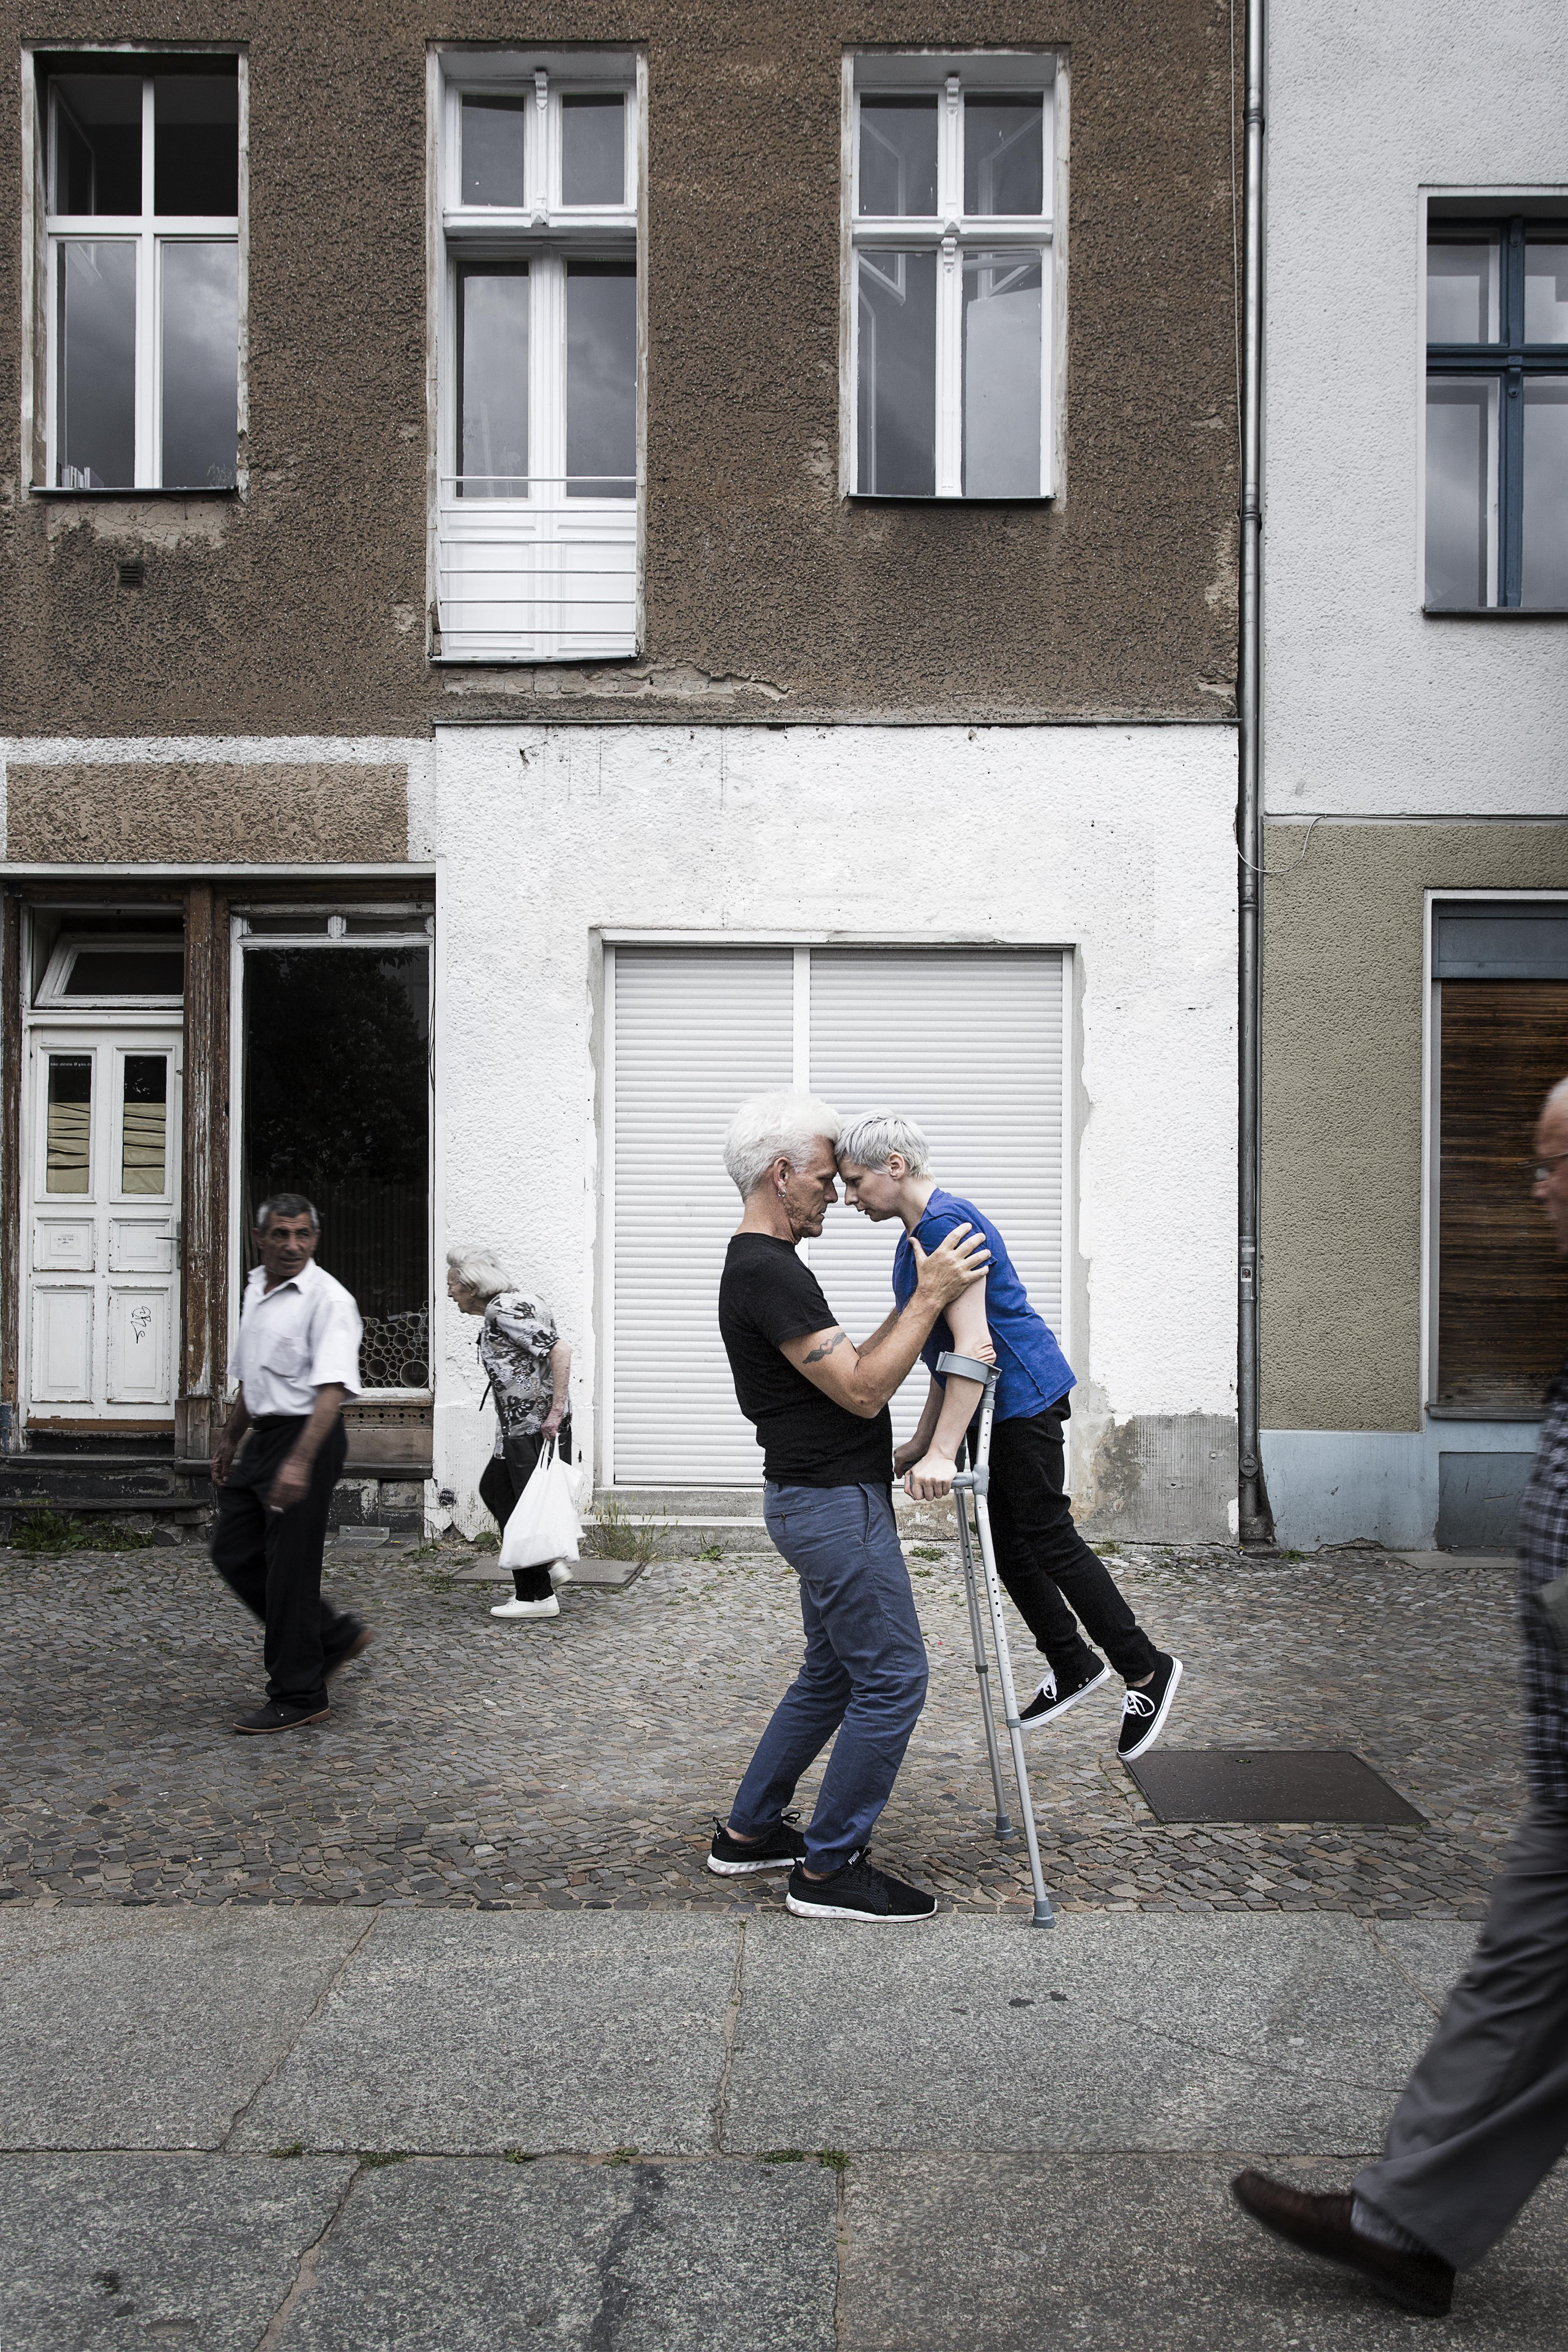 A man and woman lean on one another, their foreheads touching. The woman is held aloft by two long crutches she holds and her shoulders are steadied by the man.